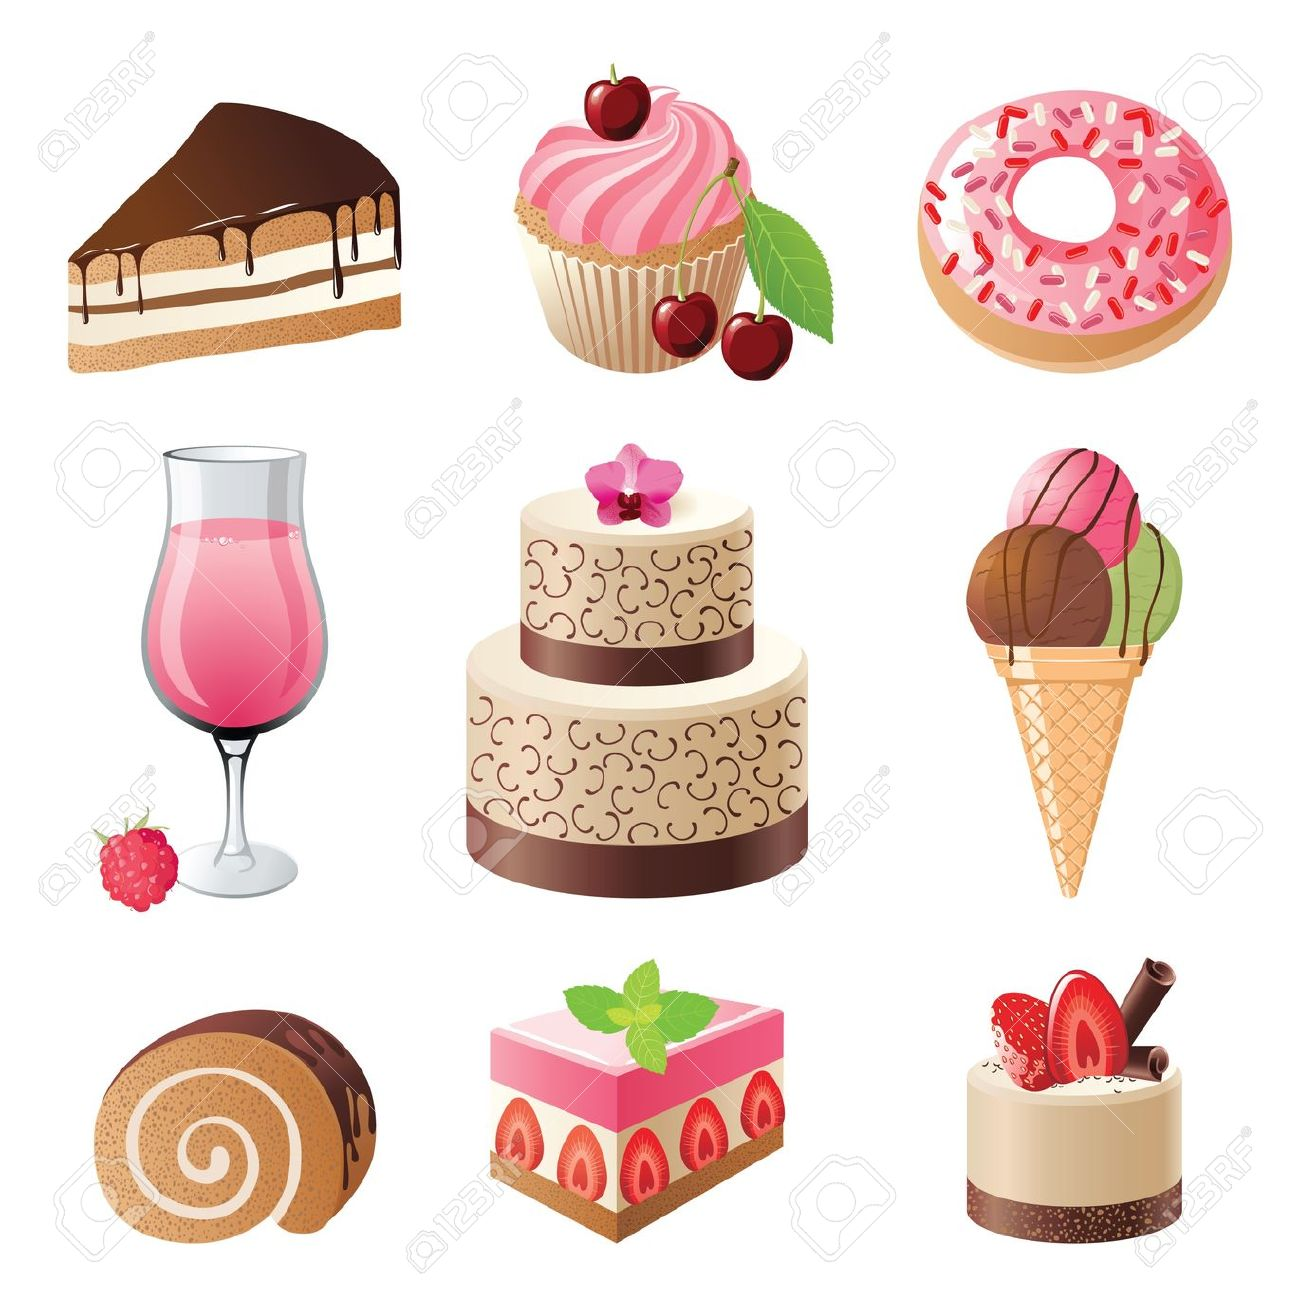 Confectionery clipart.